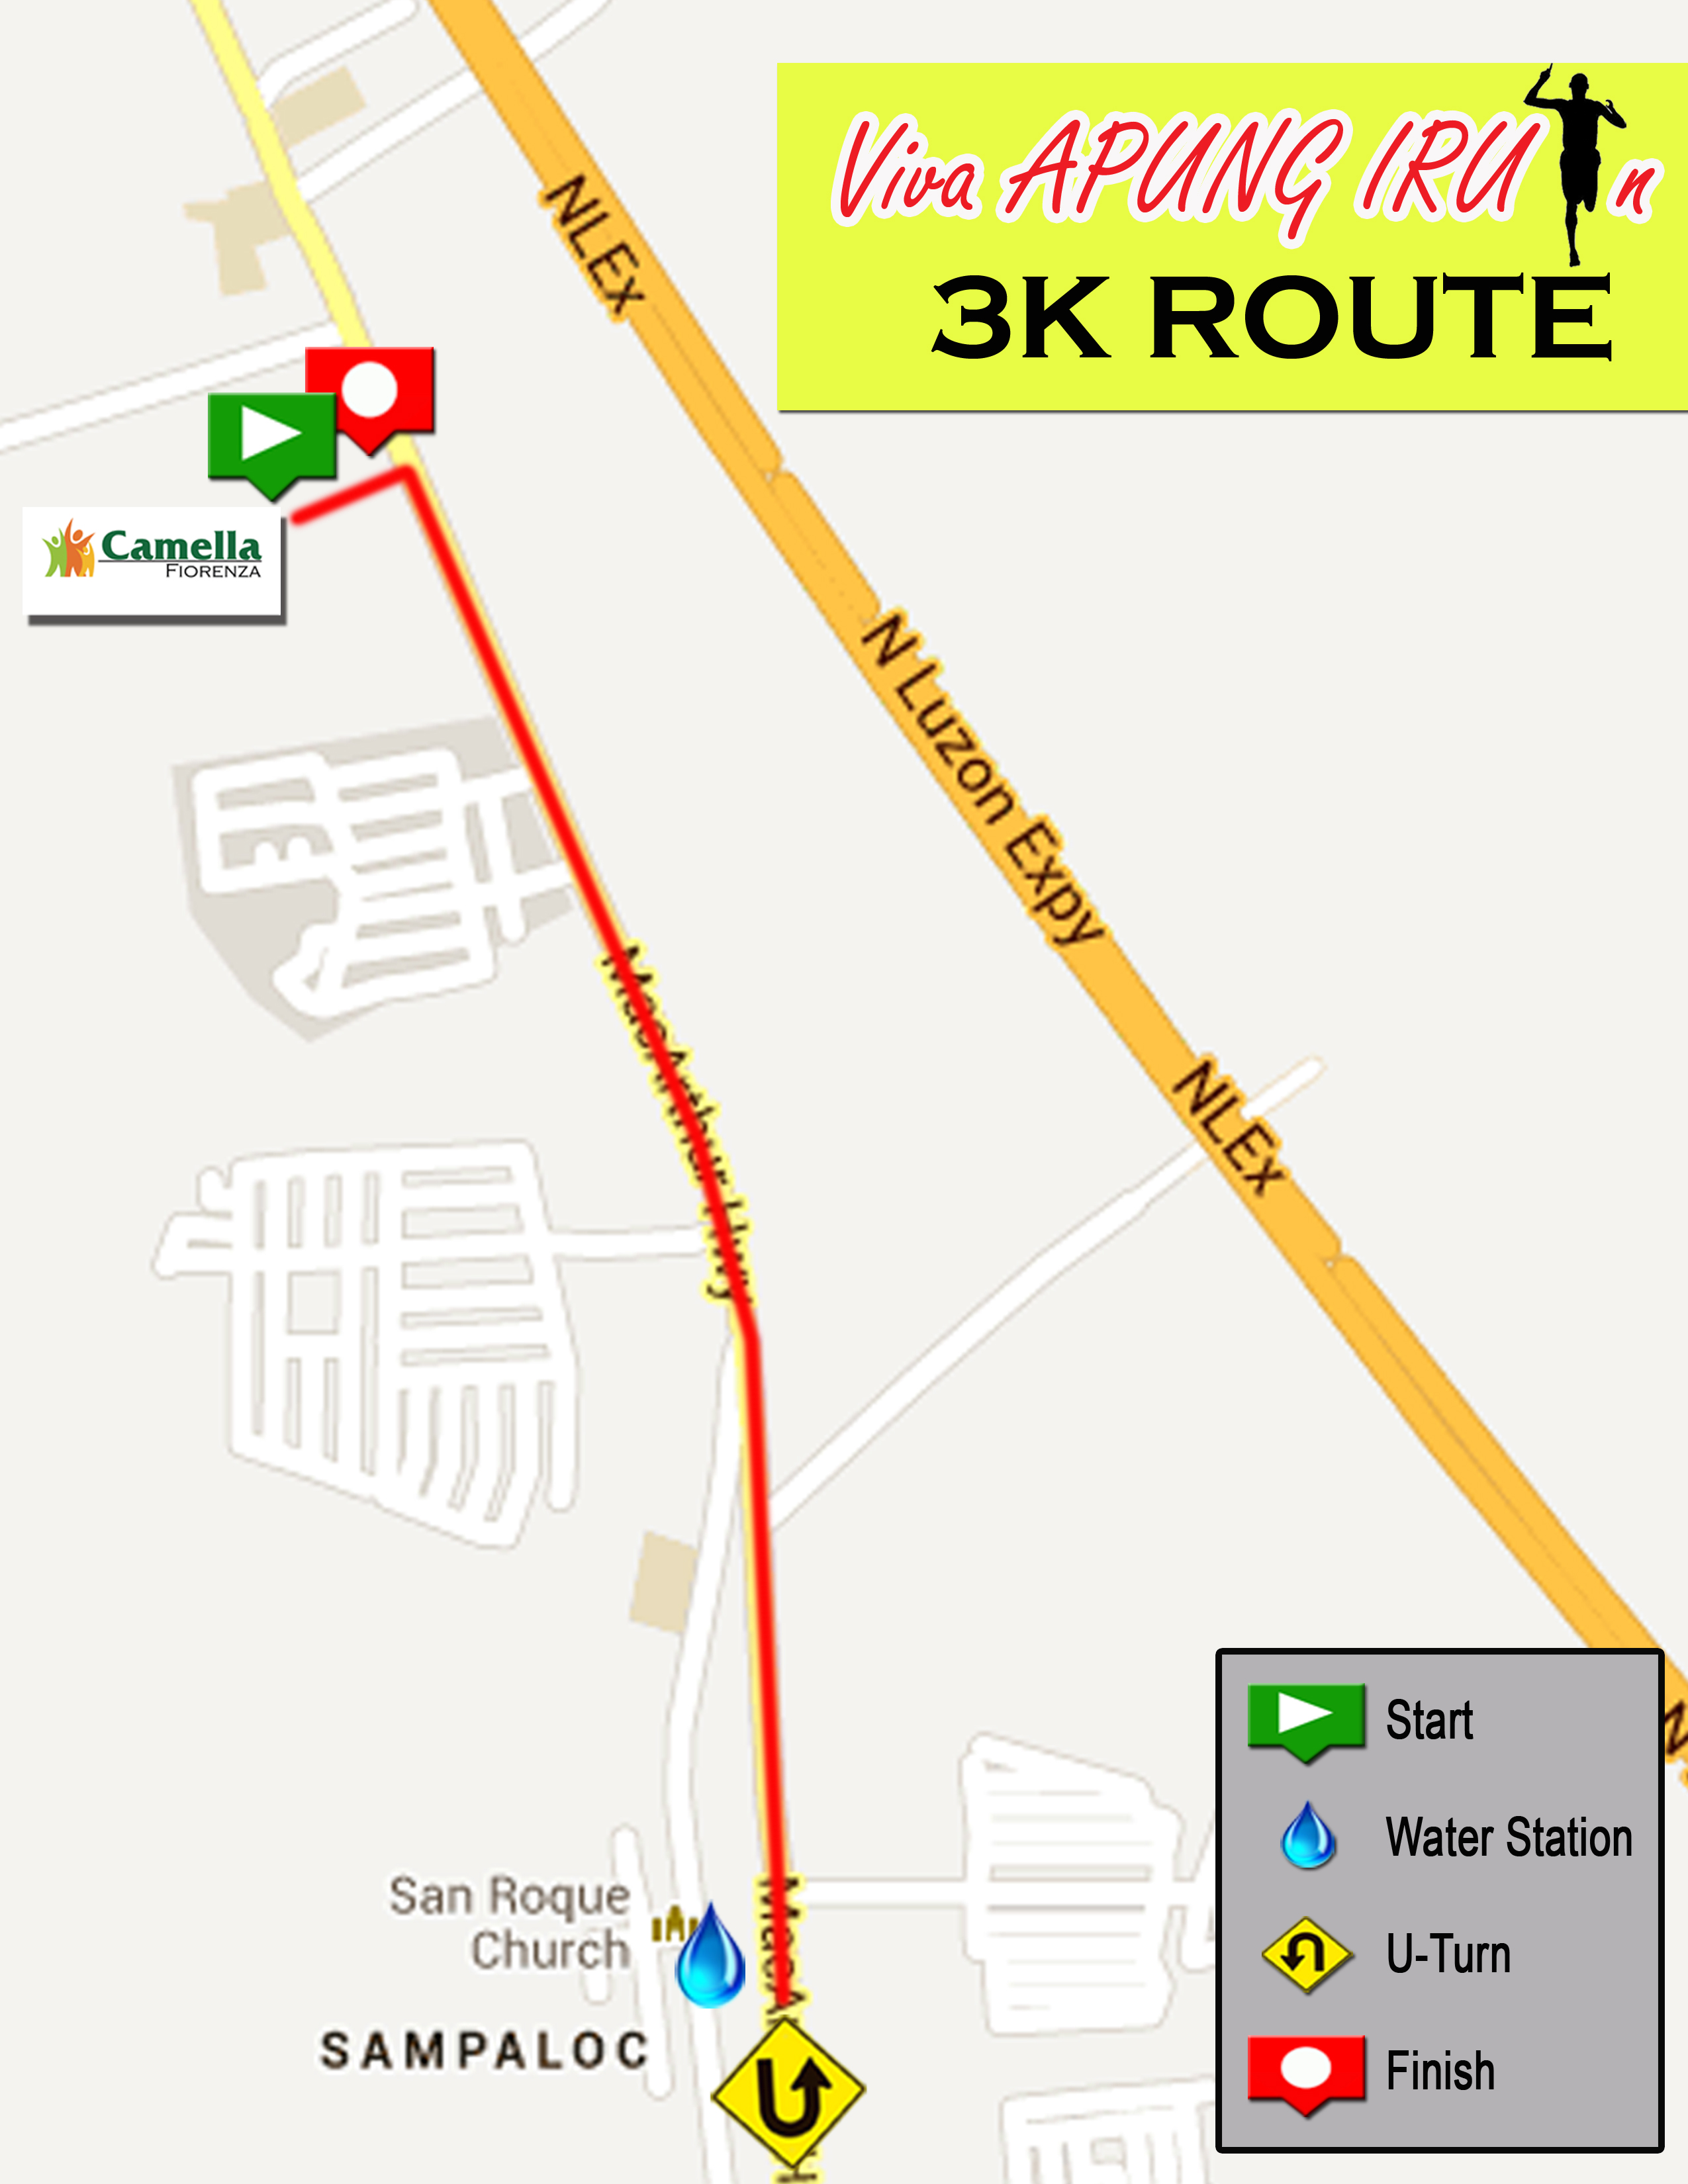 viva-apung-irun-2013-route-map-3k